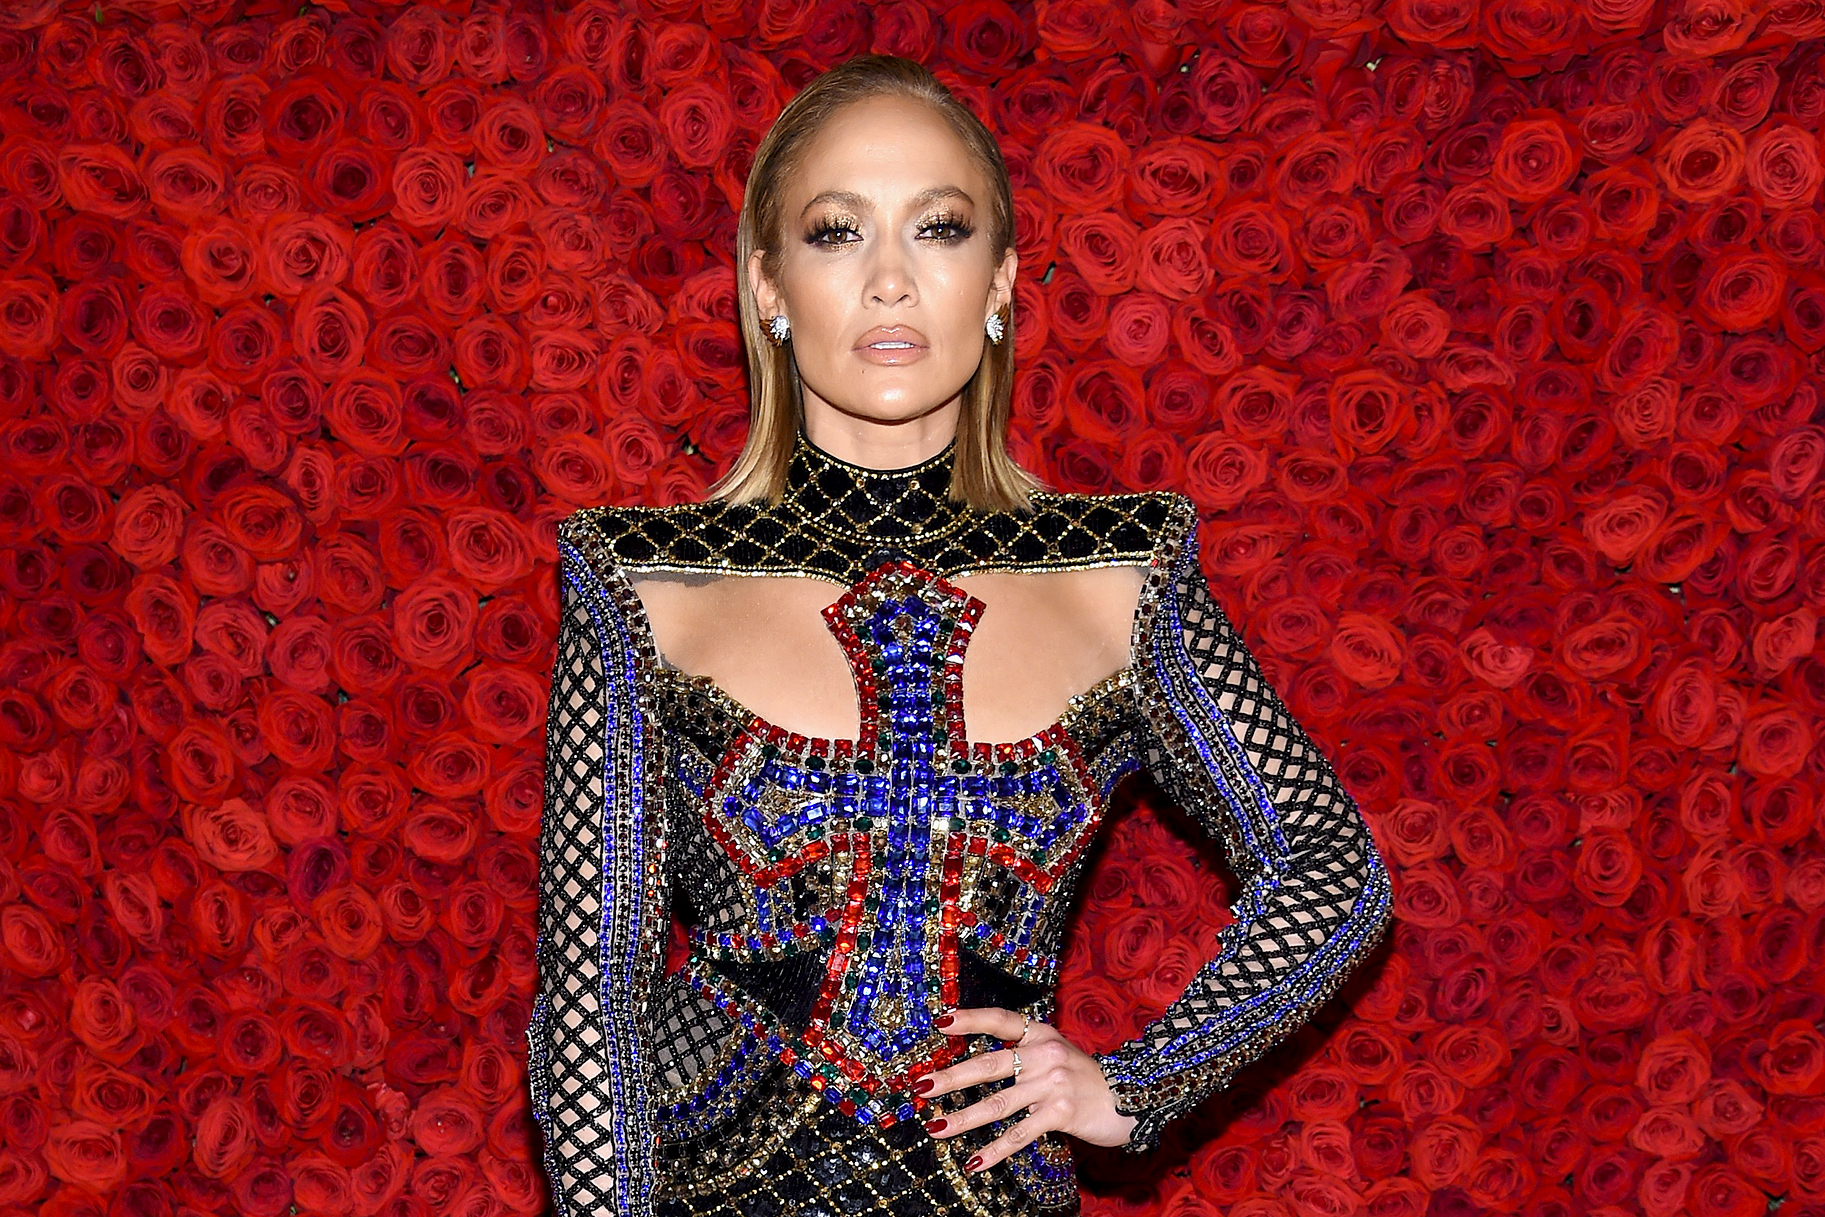 Bikini-clad Jennifer Lopez looks incredible as she celebrates 49th birthday